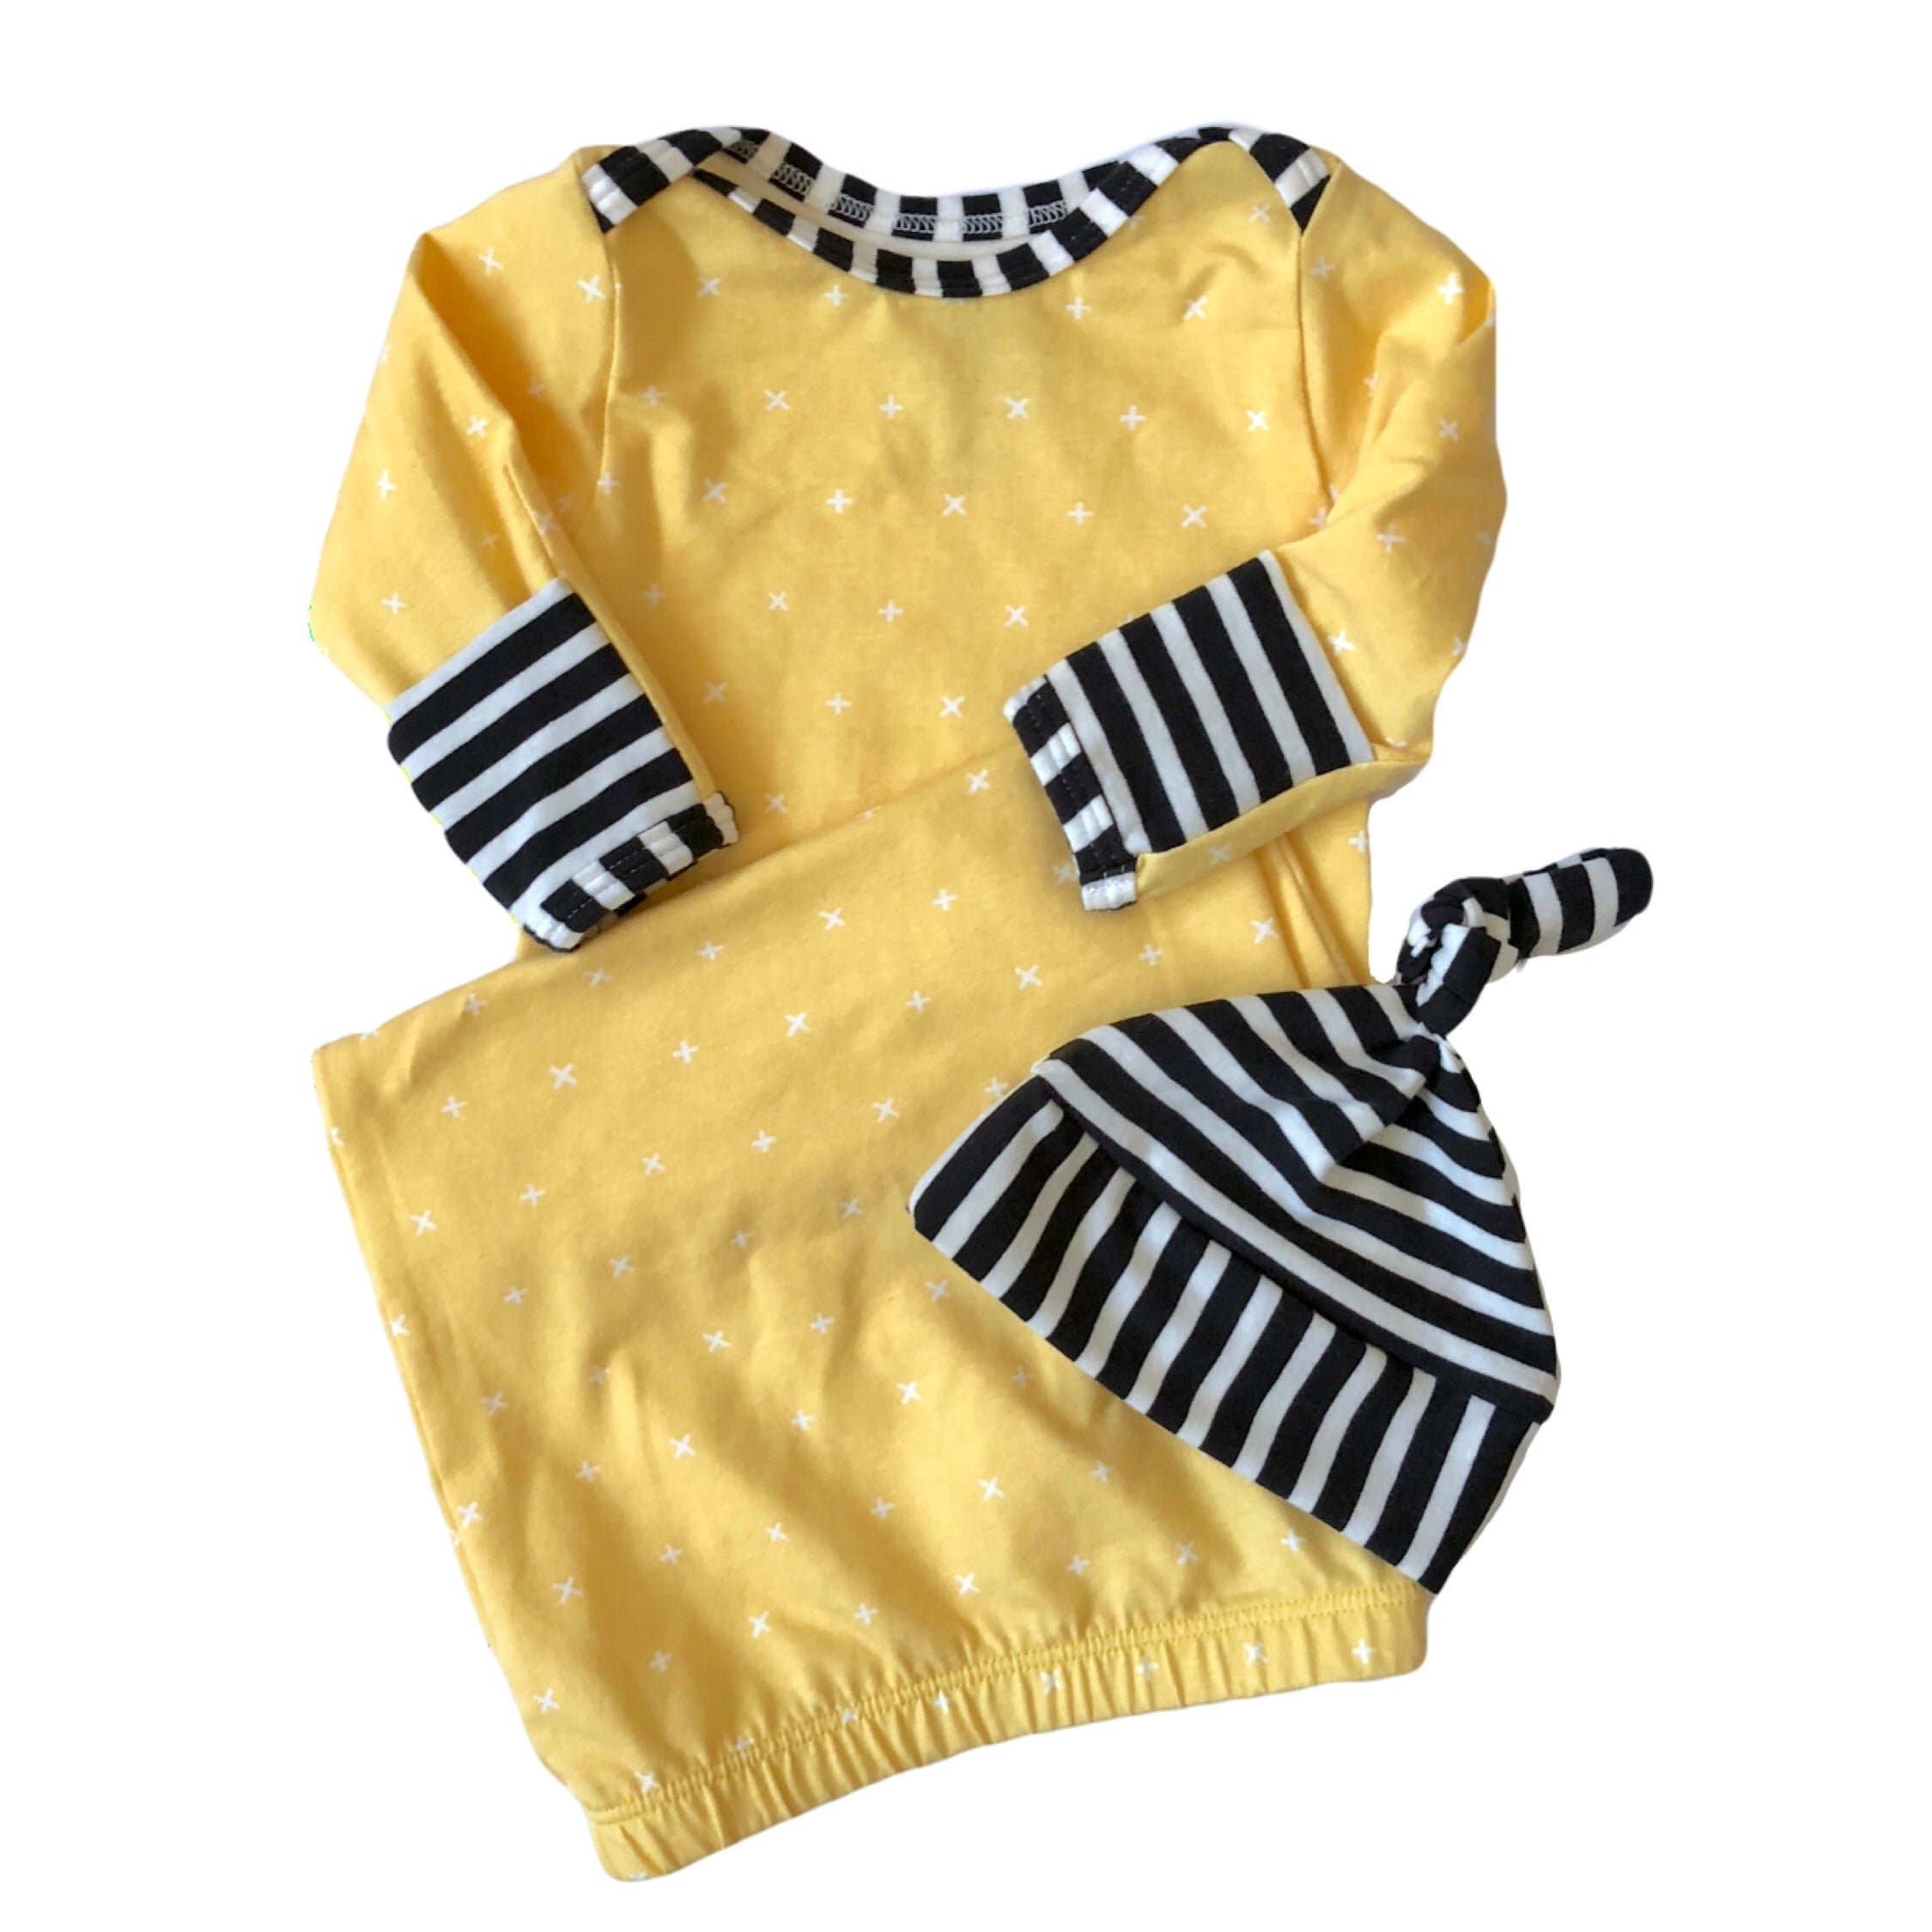 Cross My Heart Layette Gown with Black and White Stripe Accents - Oh ...